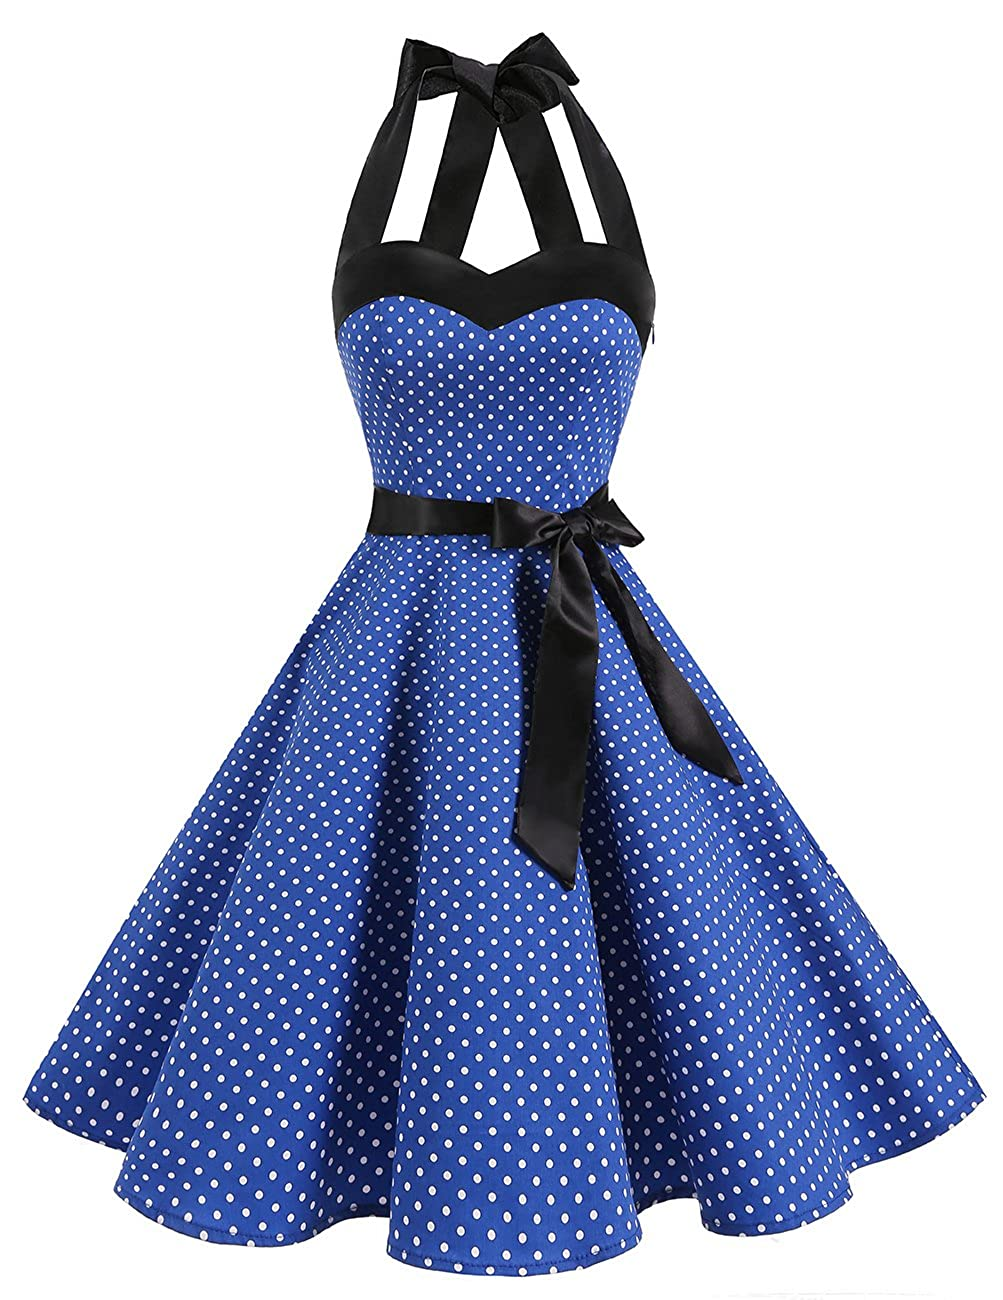 TALLA L. Dresstells® Halter 50s Rockabilly Polka Dots Audrey Dress Retro Cocktail Dress Royal Blue Small White Dot L